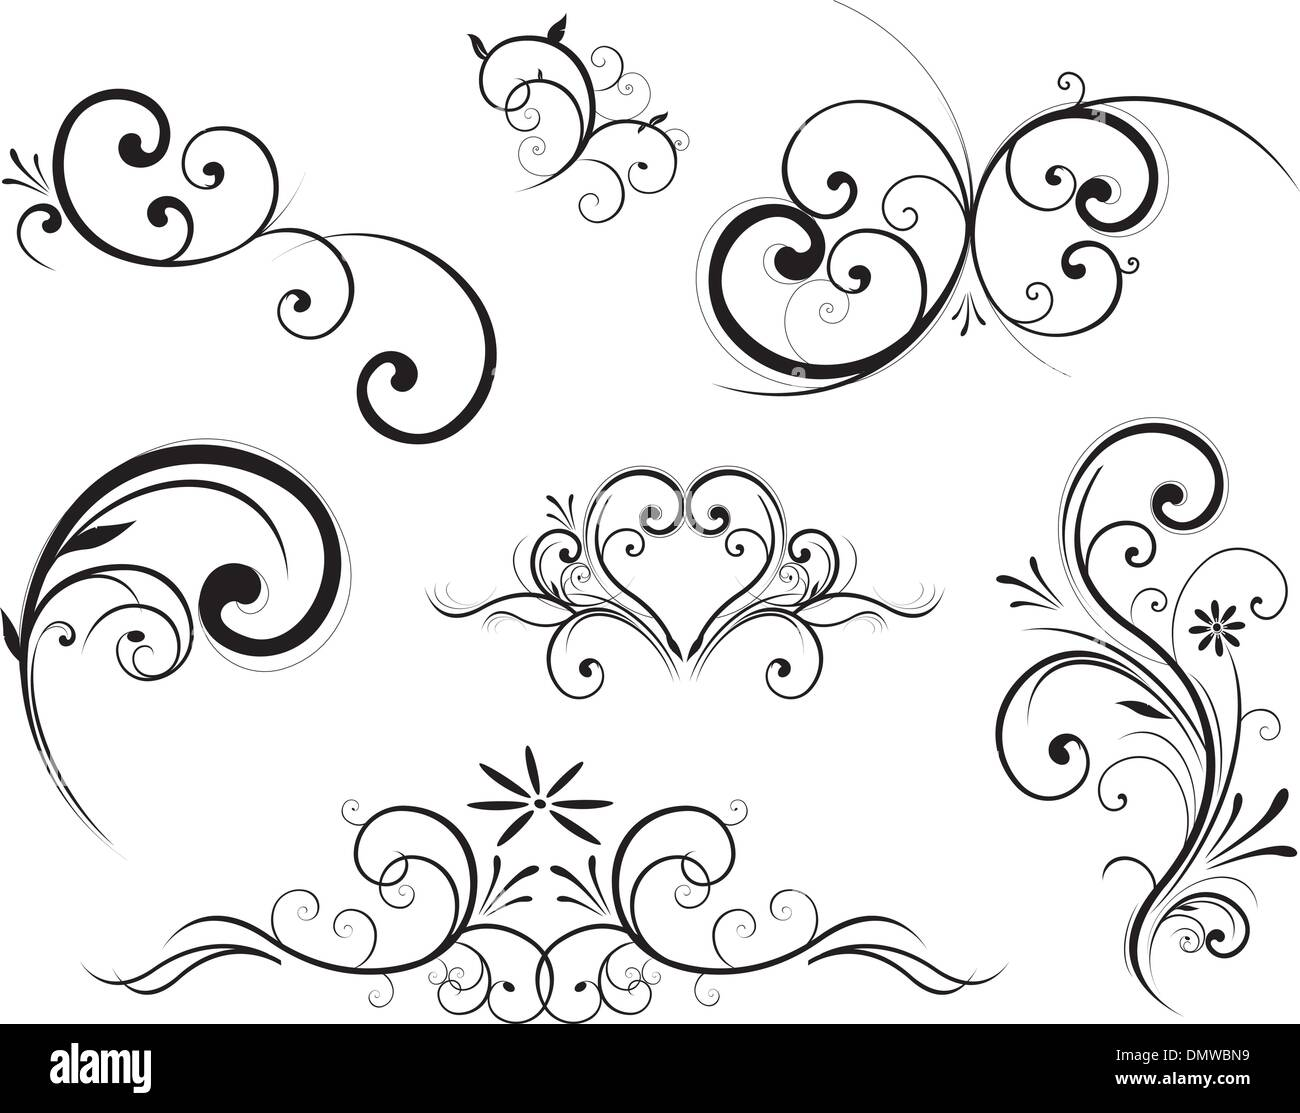 Swirling Flourishes Decorative Floral Elements Stock Vector Art